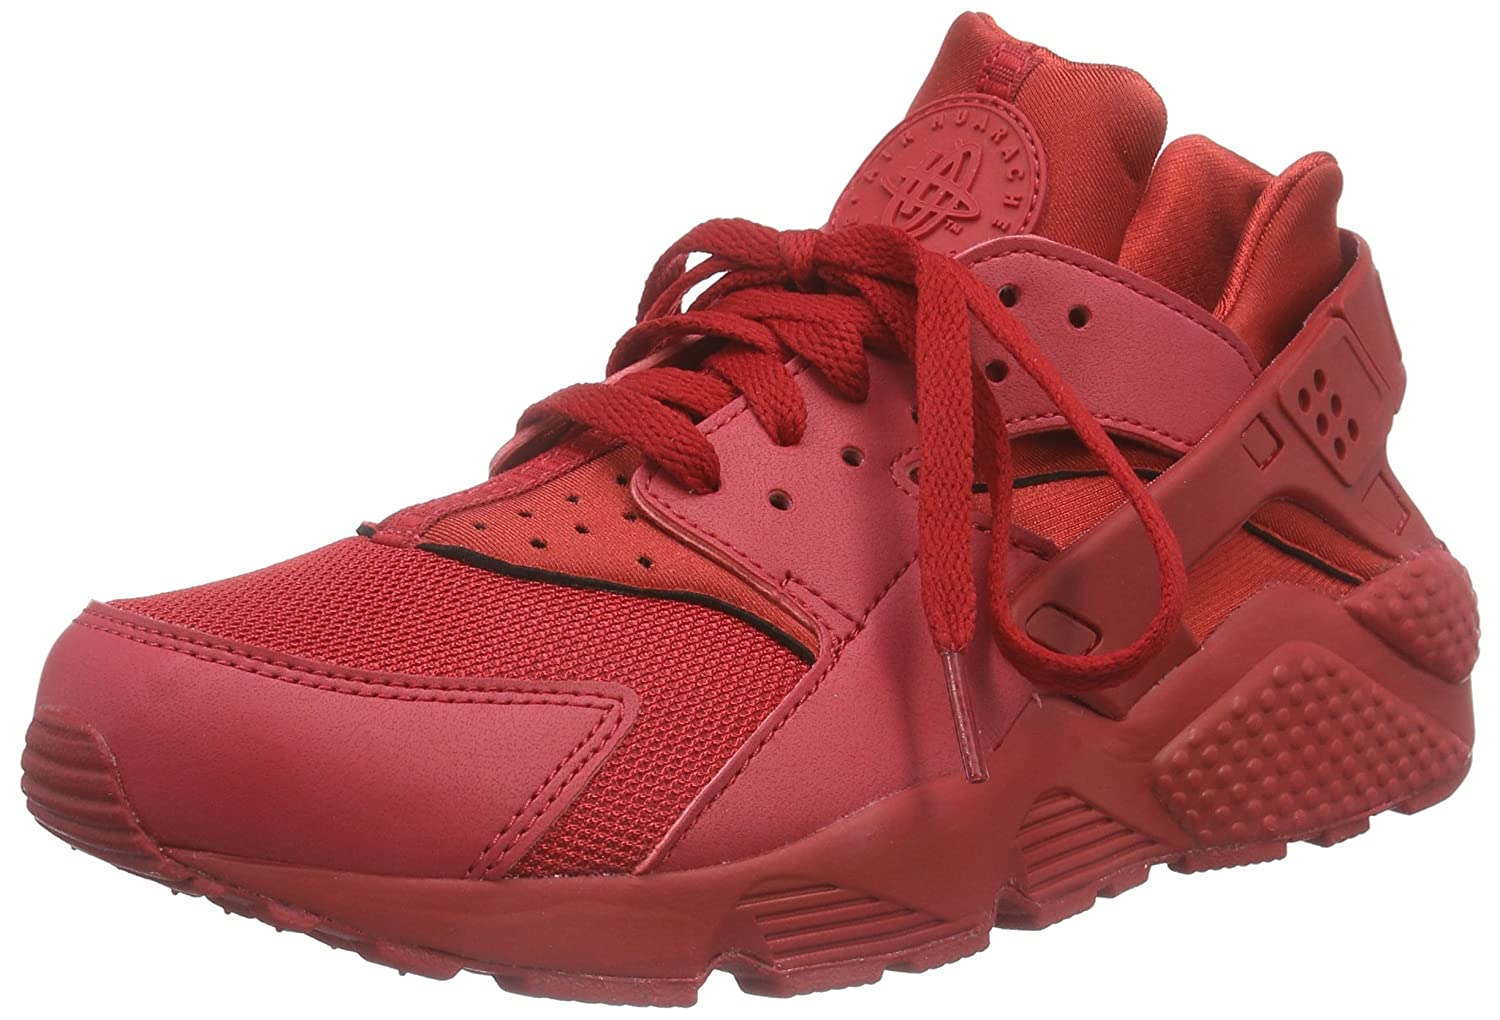 new style a953e 272fb Amazon.com  Nike Men s Air Huarache Running Shoe  Nike  Shoes